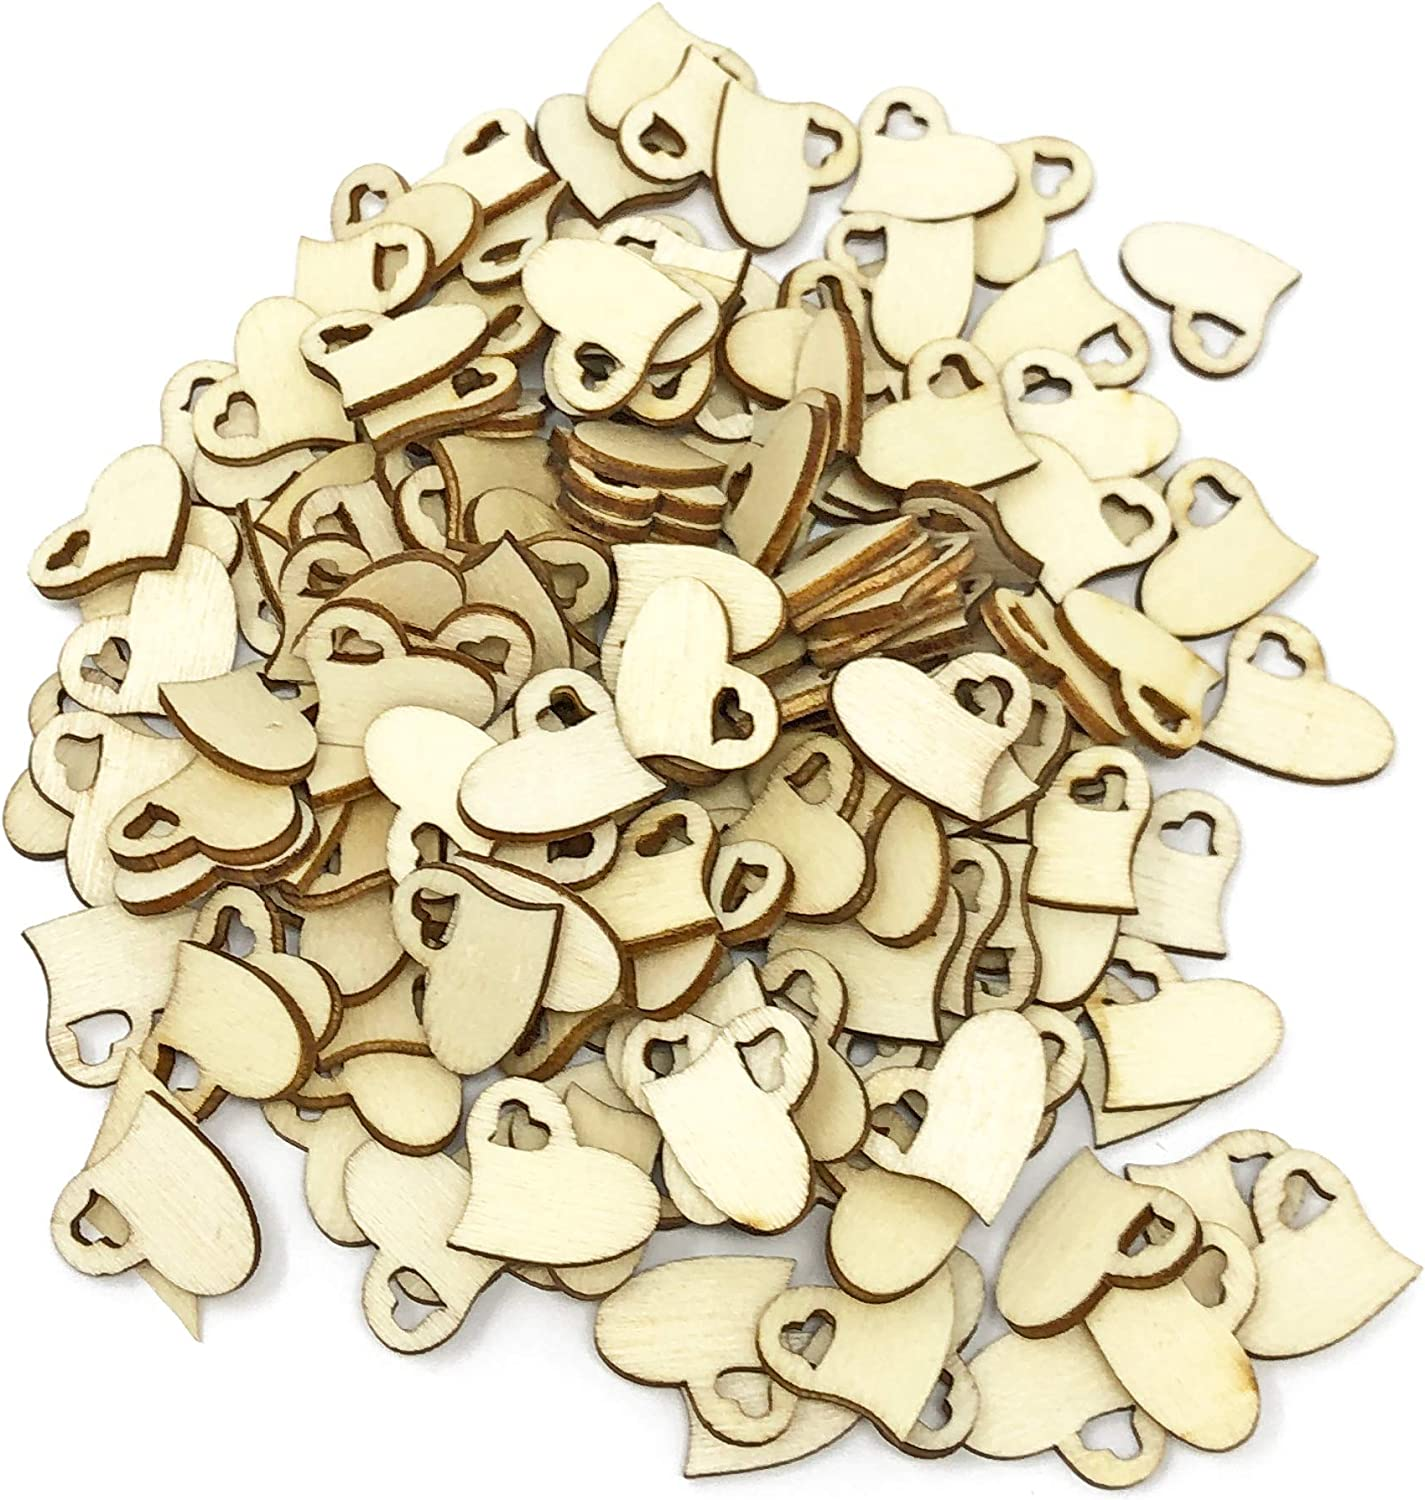 100 15mm Double Love Hearts Wooden Shabby Chic Craft Scrapbook Vintage Confetti Hearts